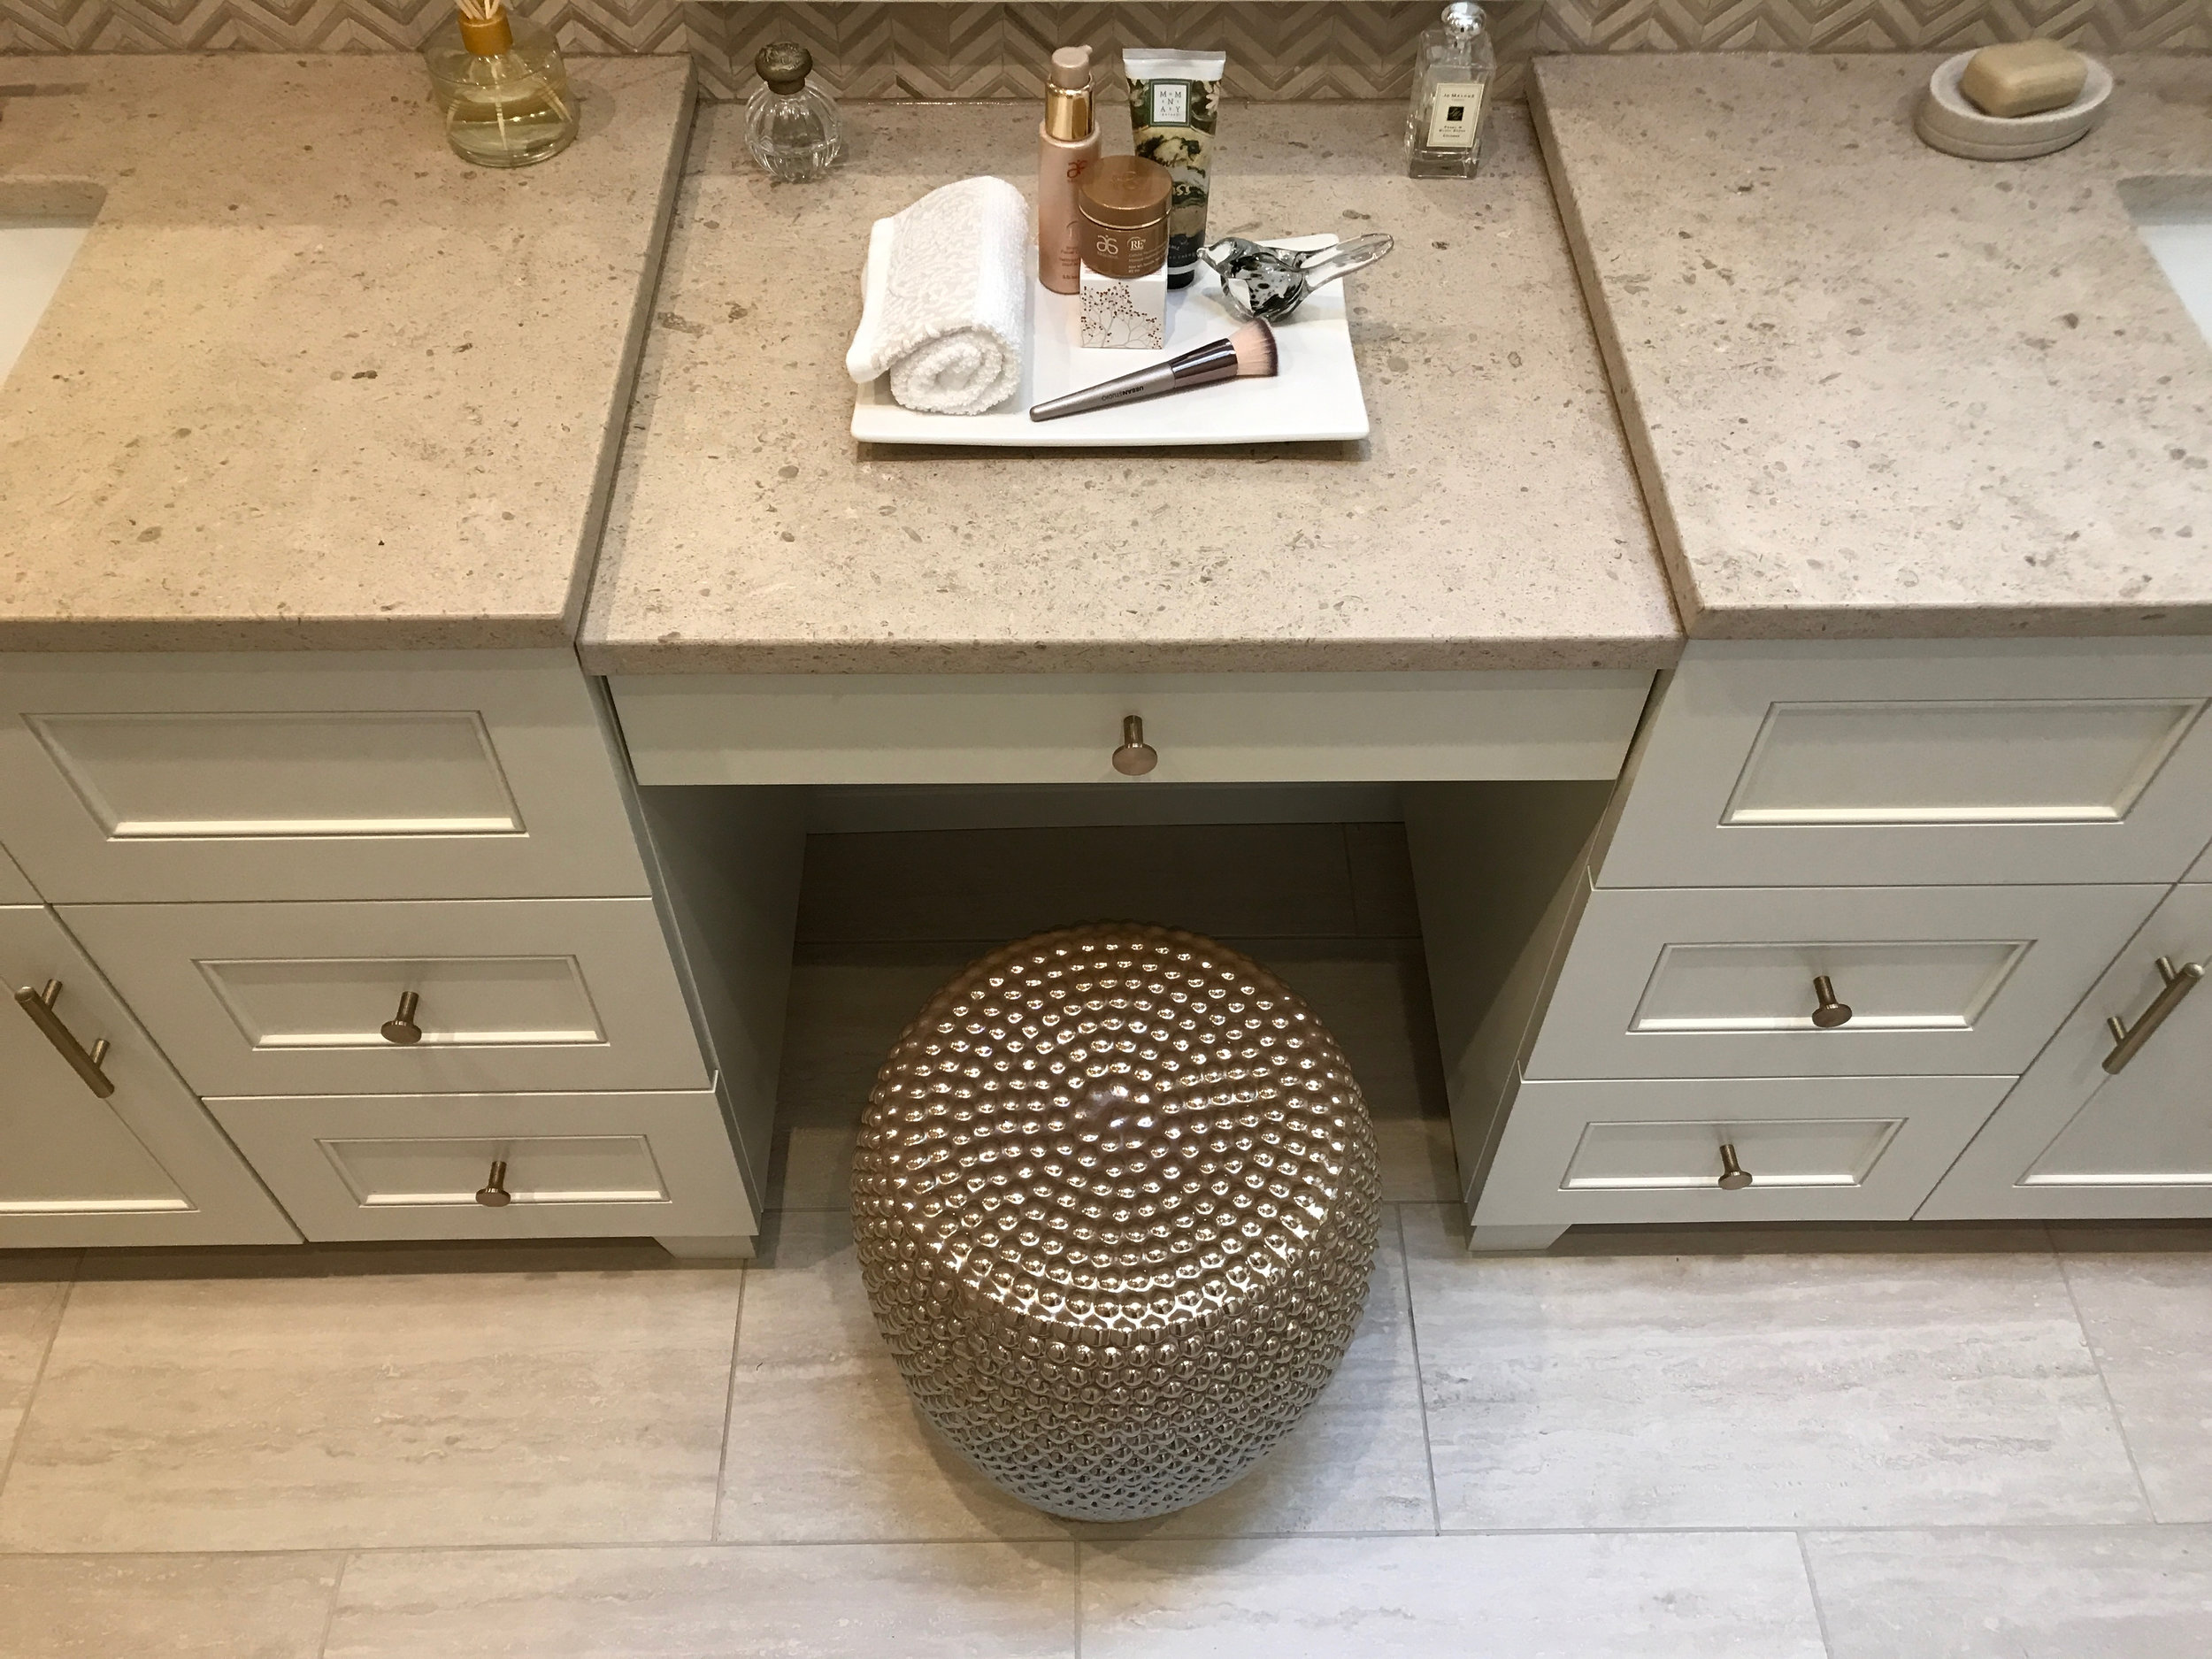 KAM Design_MasterBath_Top View_Pleasantville_2017 - 7.jpg